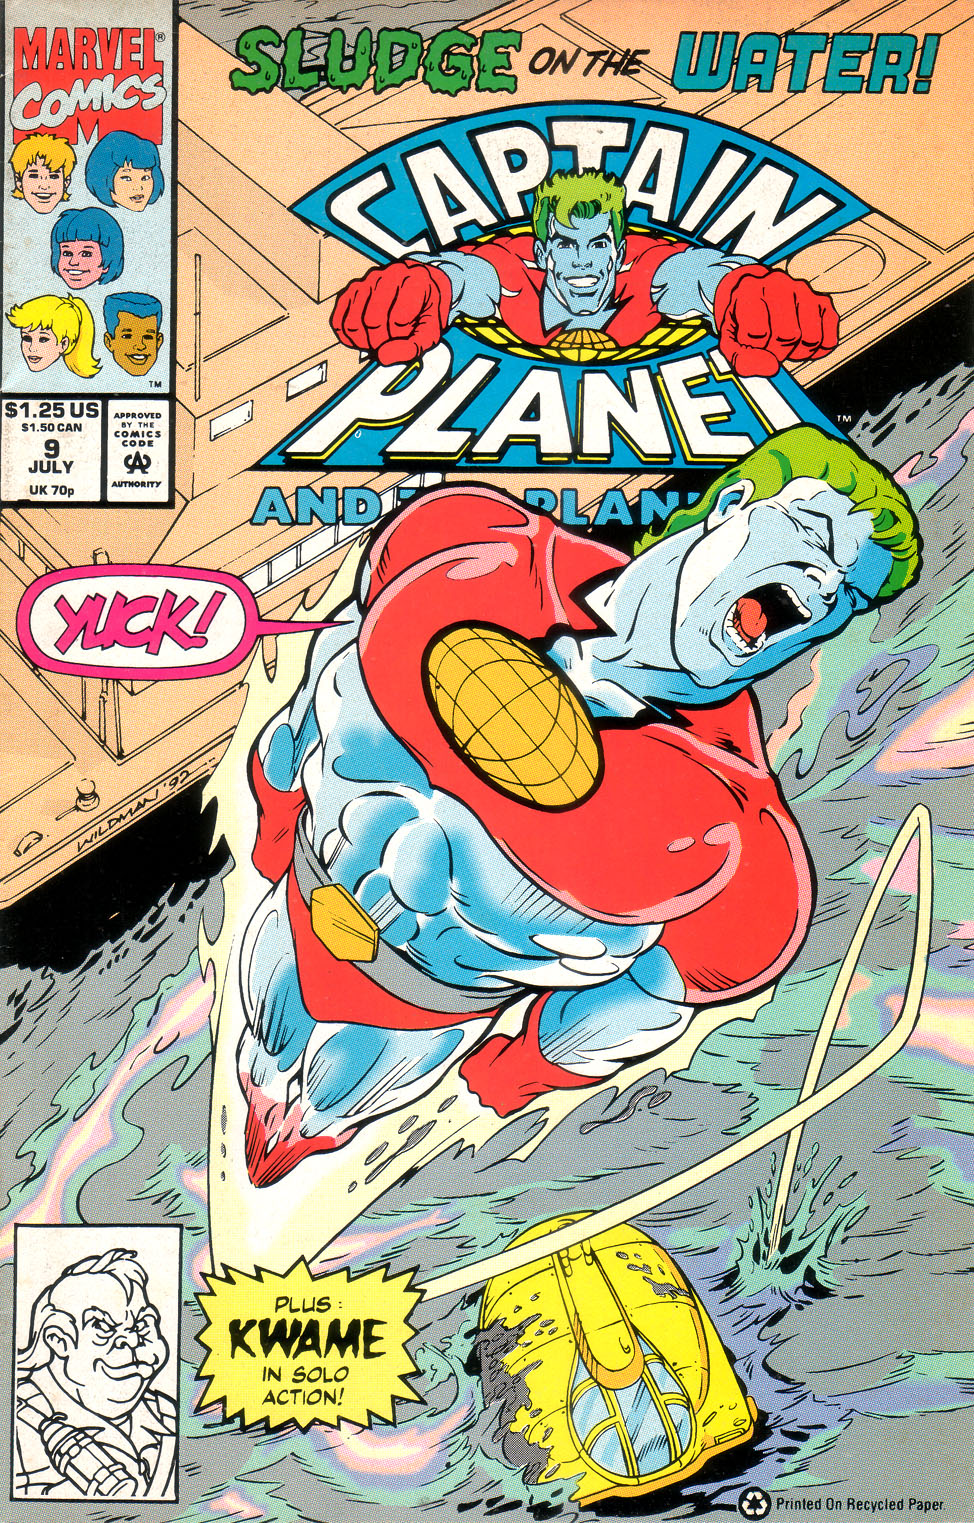 Captain Planet and the Planeteers 9 Page 1